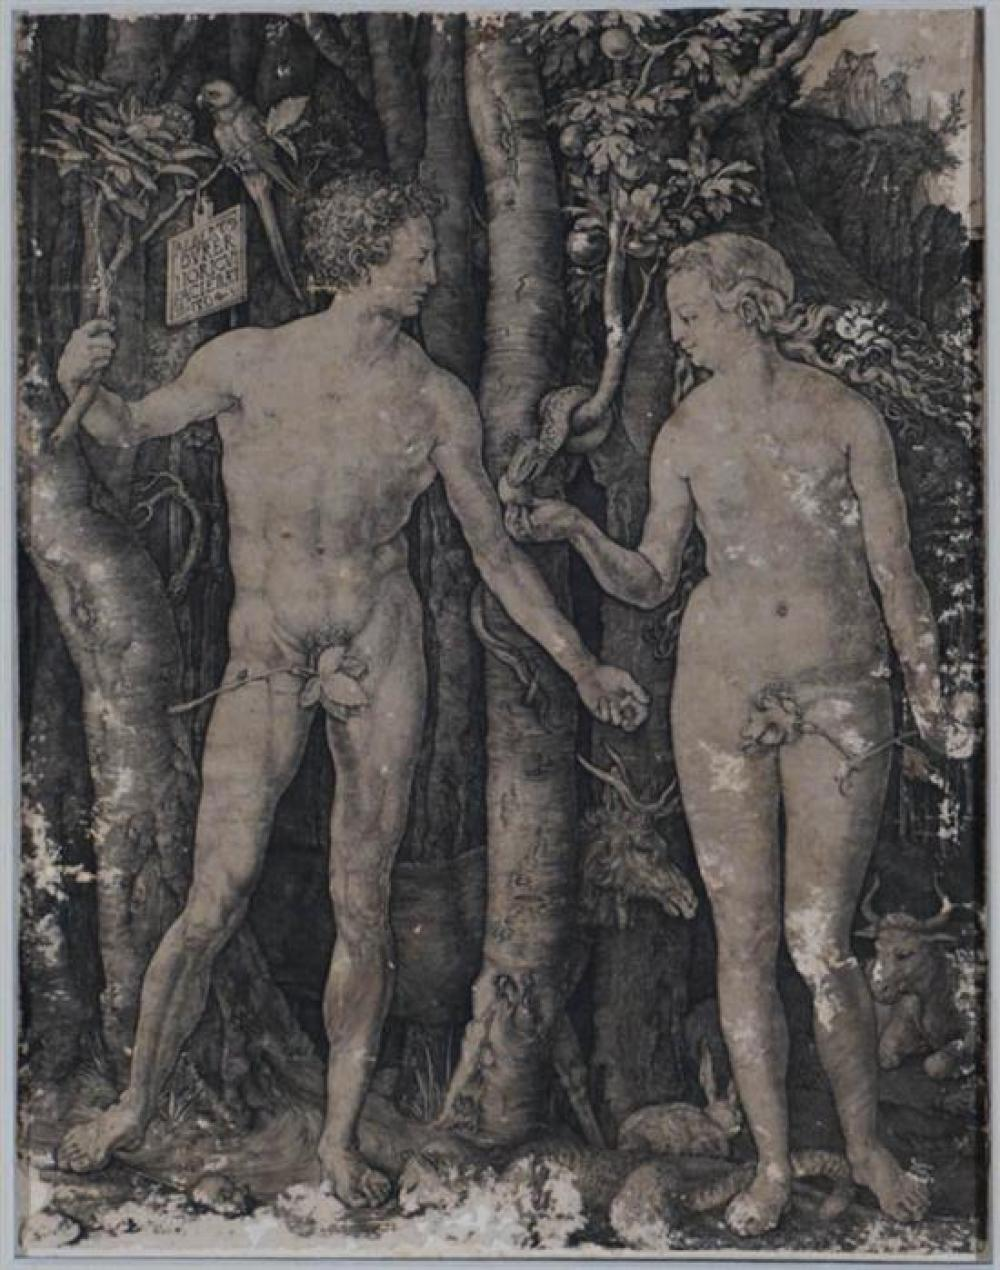 Albrecht Dürer (German 1471-1528), Adam and Eve